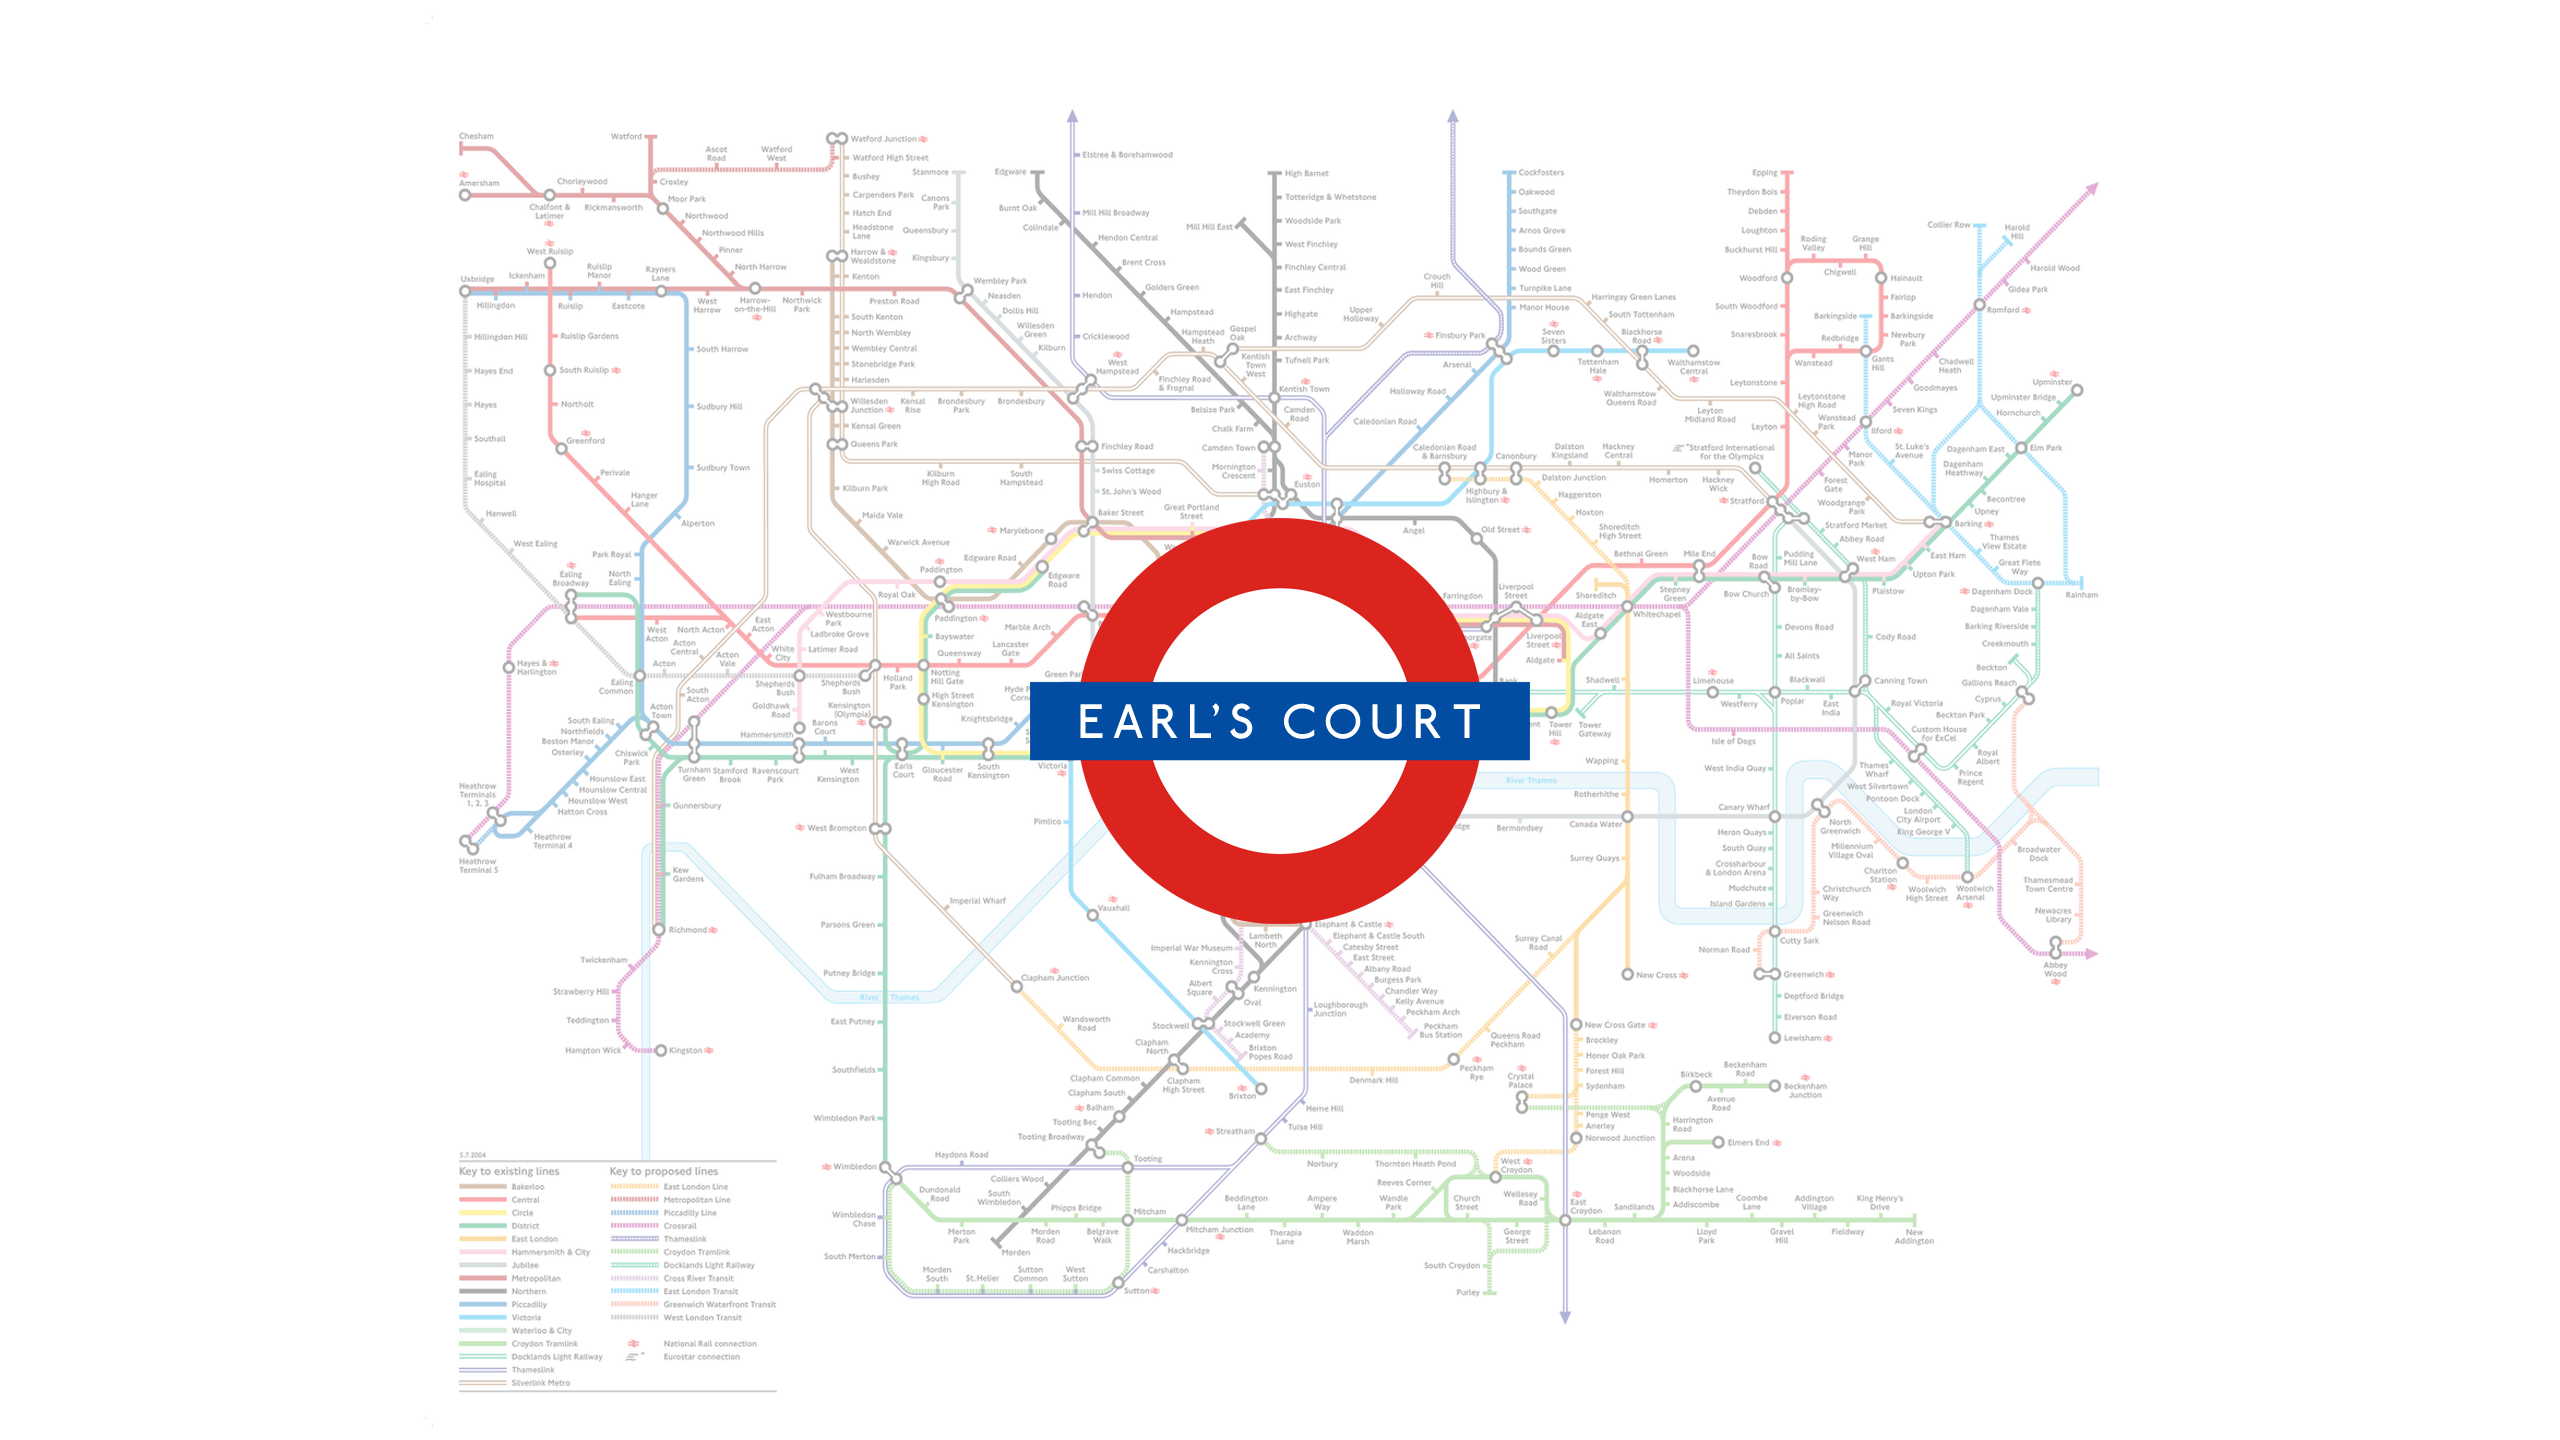 Earl's Court (Map)